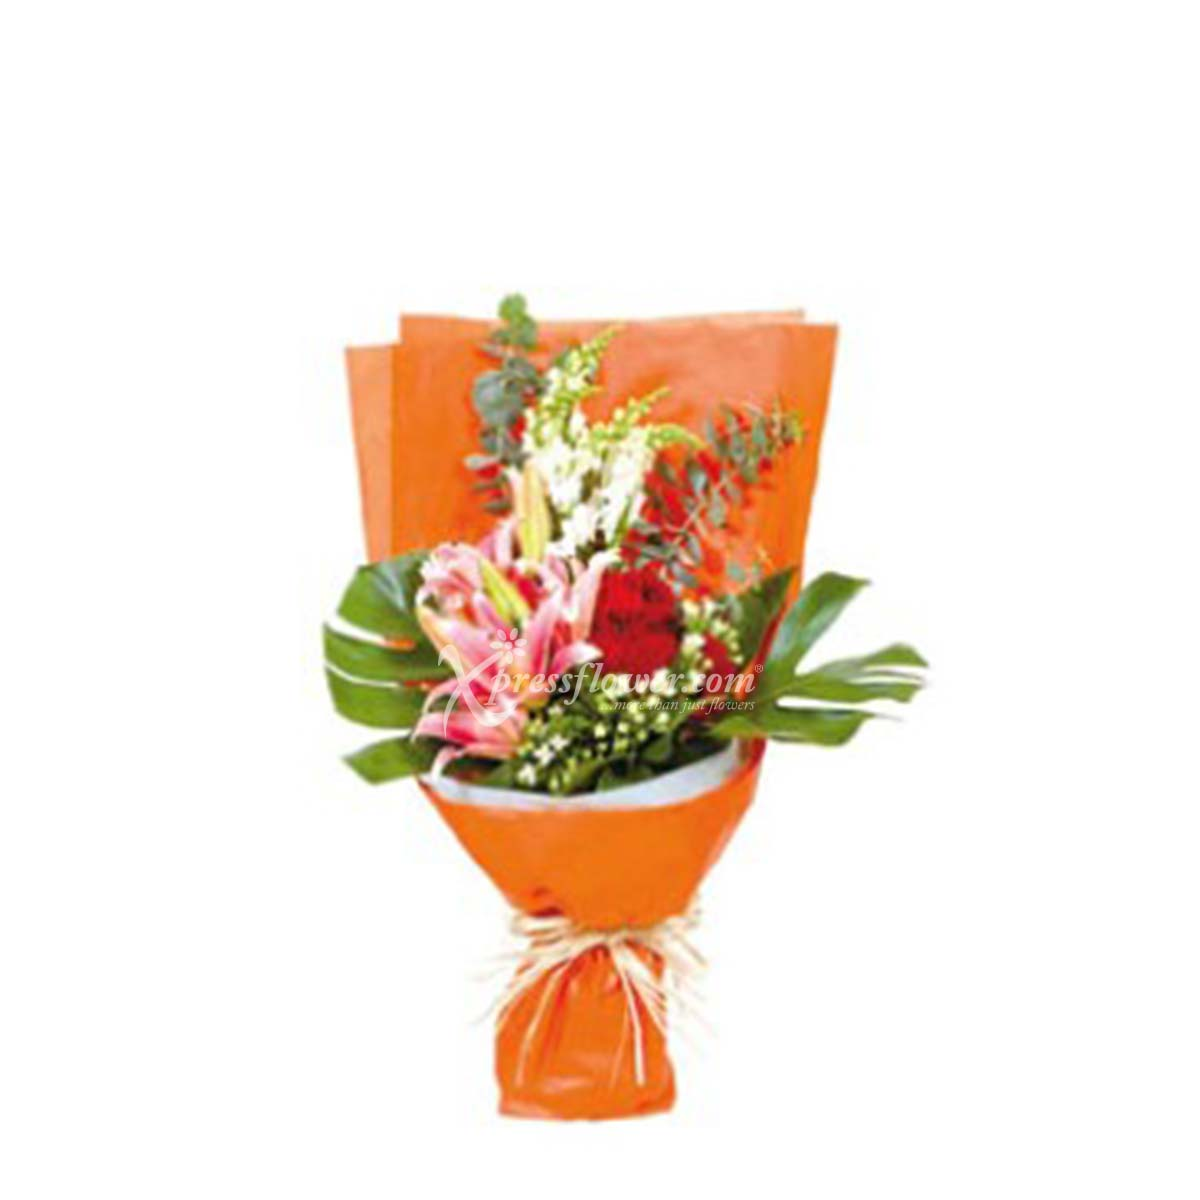 BOUQUET OF SEASONAL FLOWERS (HK)